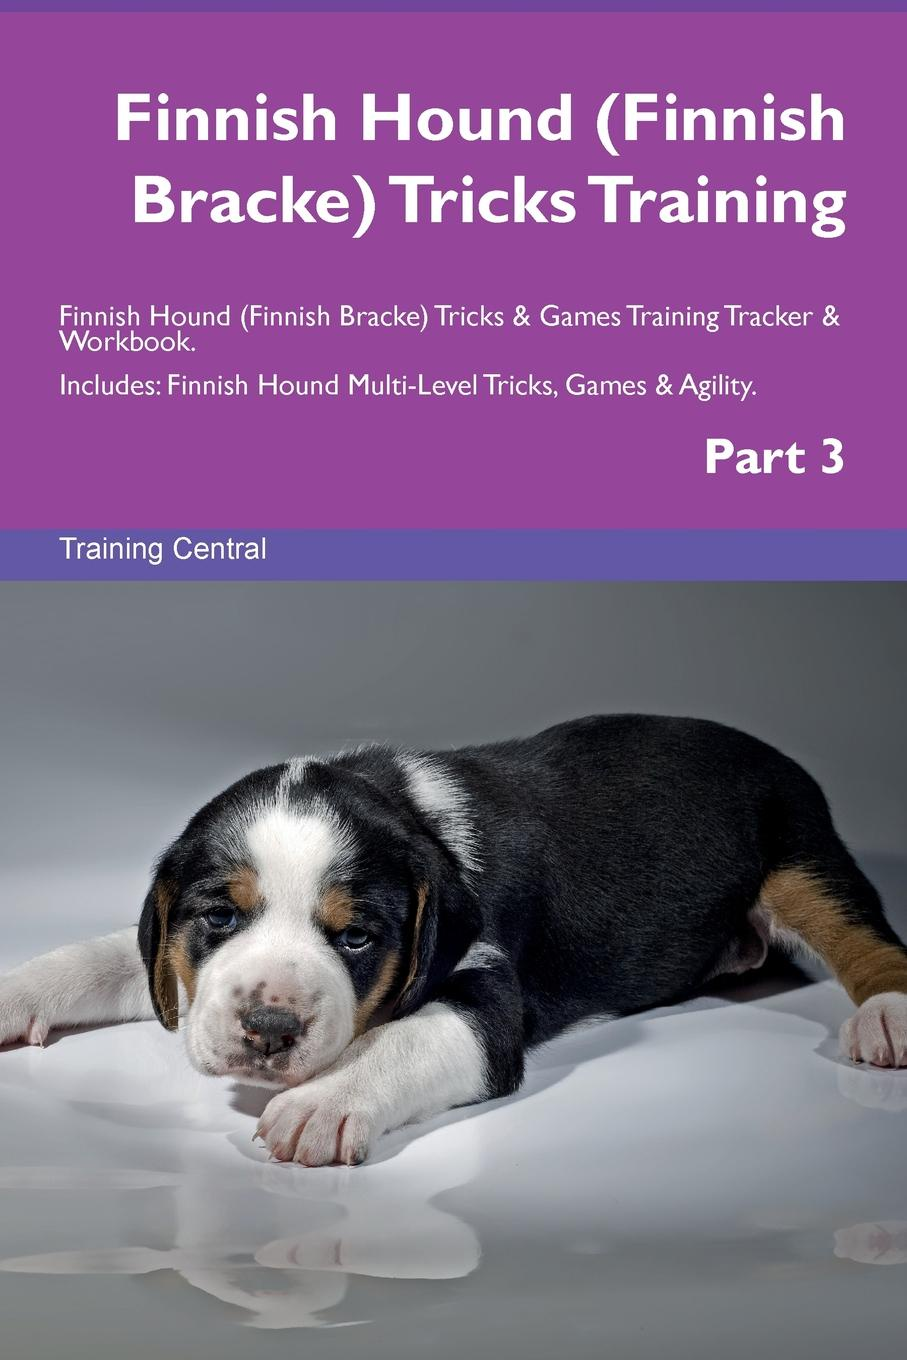 Training Central Finnish Hound (Finnish Bracke) Tricks Training Finnish Hound (Finnish Bracke) Tricks & Games Training Tracker & Workbook. Includes. Finnish Hound Multi-Level Tricks, Games & Agility. Part 3 henkikirjoitusta seka muuttamista seurakunnasta toiseen ja papintodistuksia koskevat asetukset finnish edition